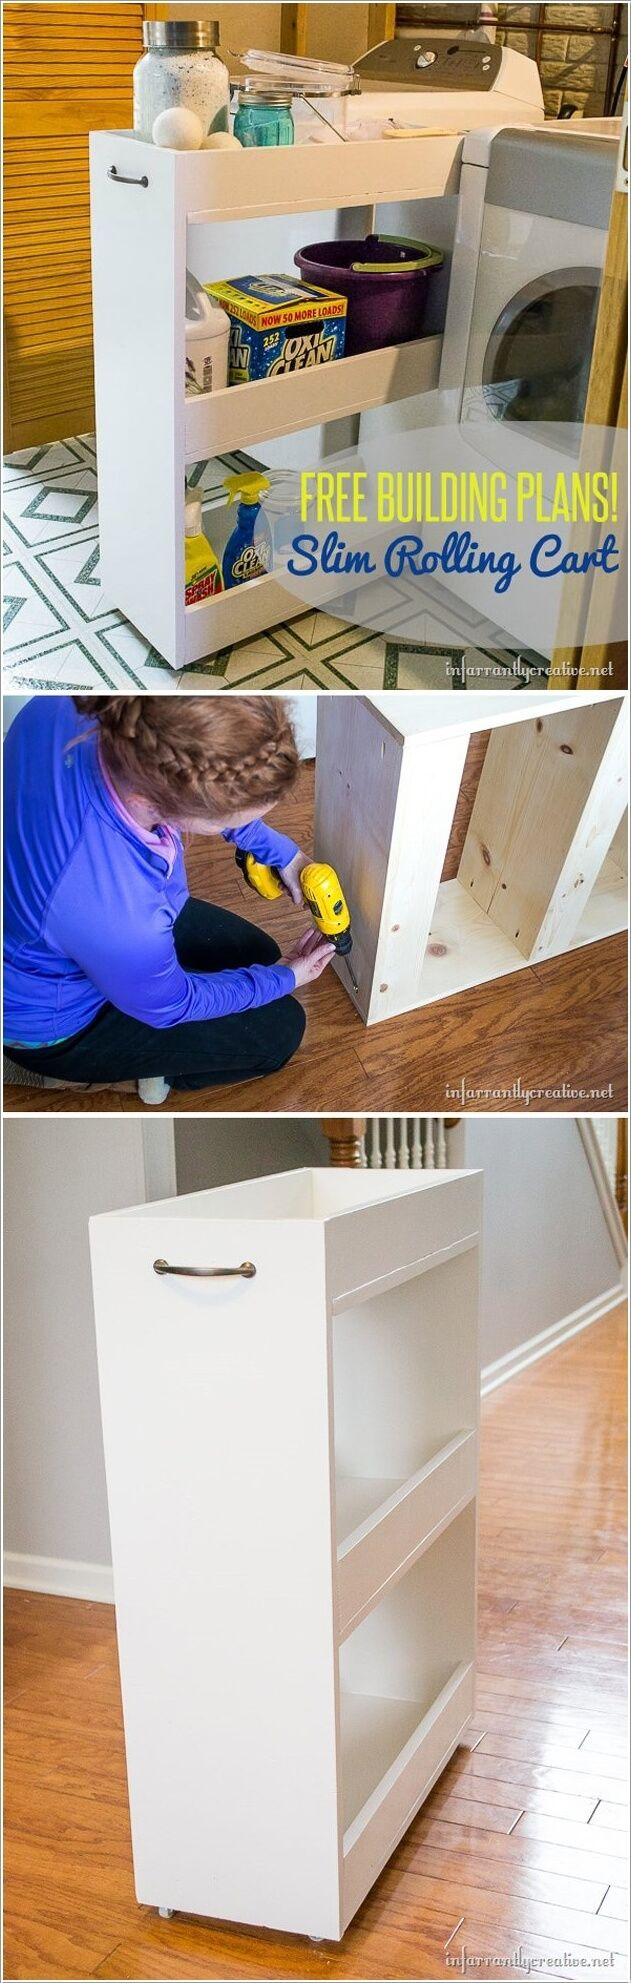 10 Clever Ideas to Store More in Your Laundry Room 2 | Organize ...